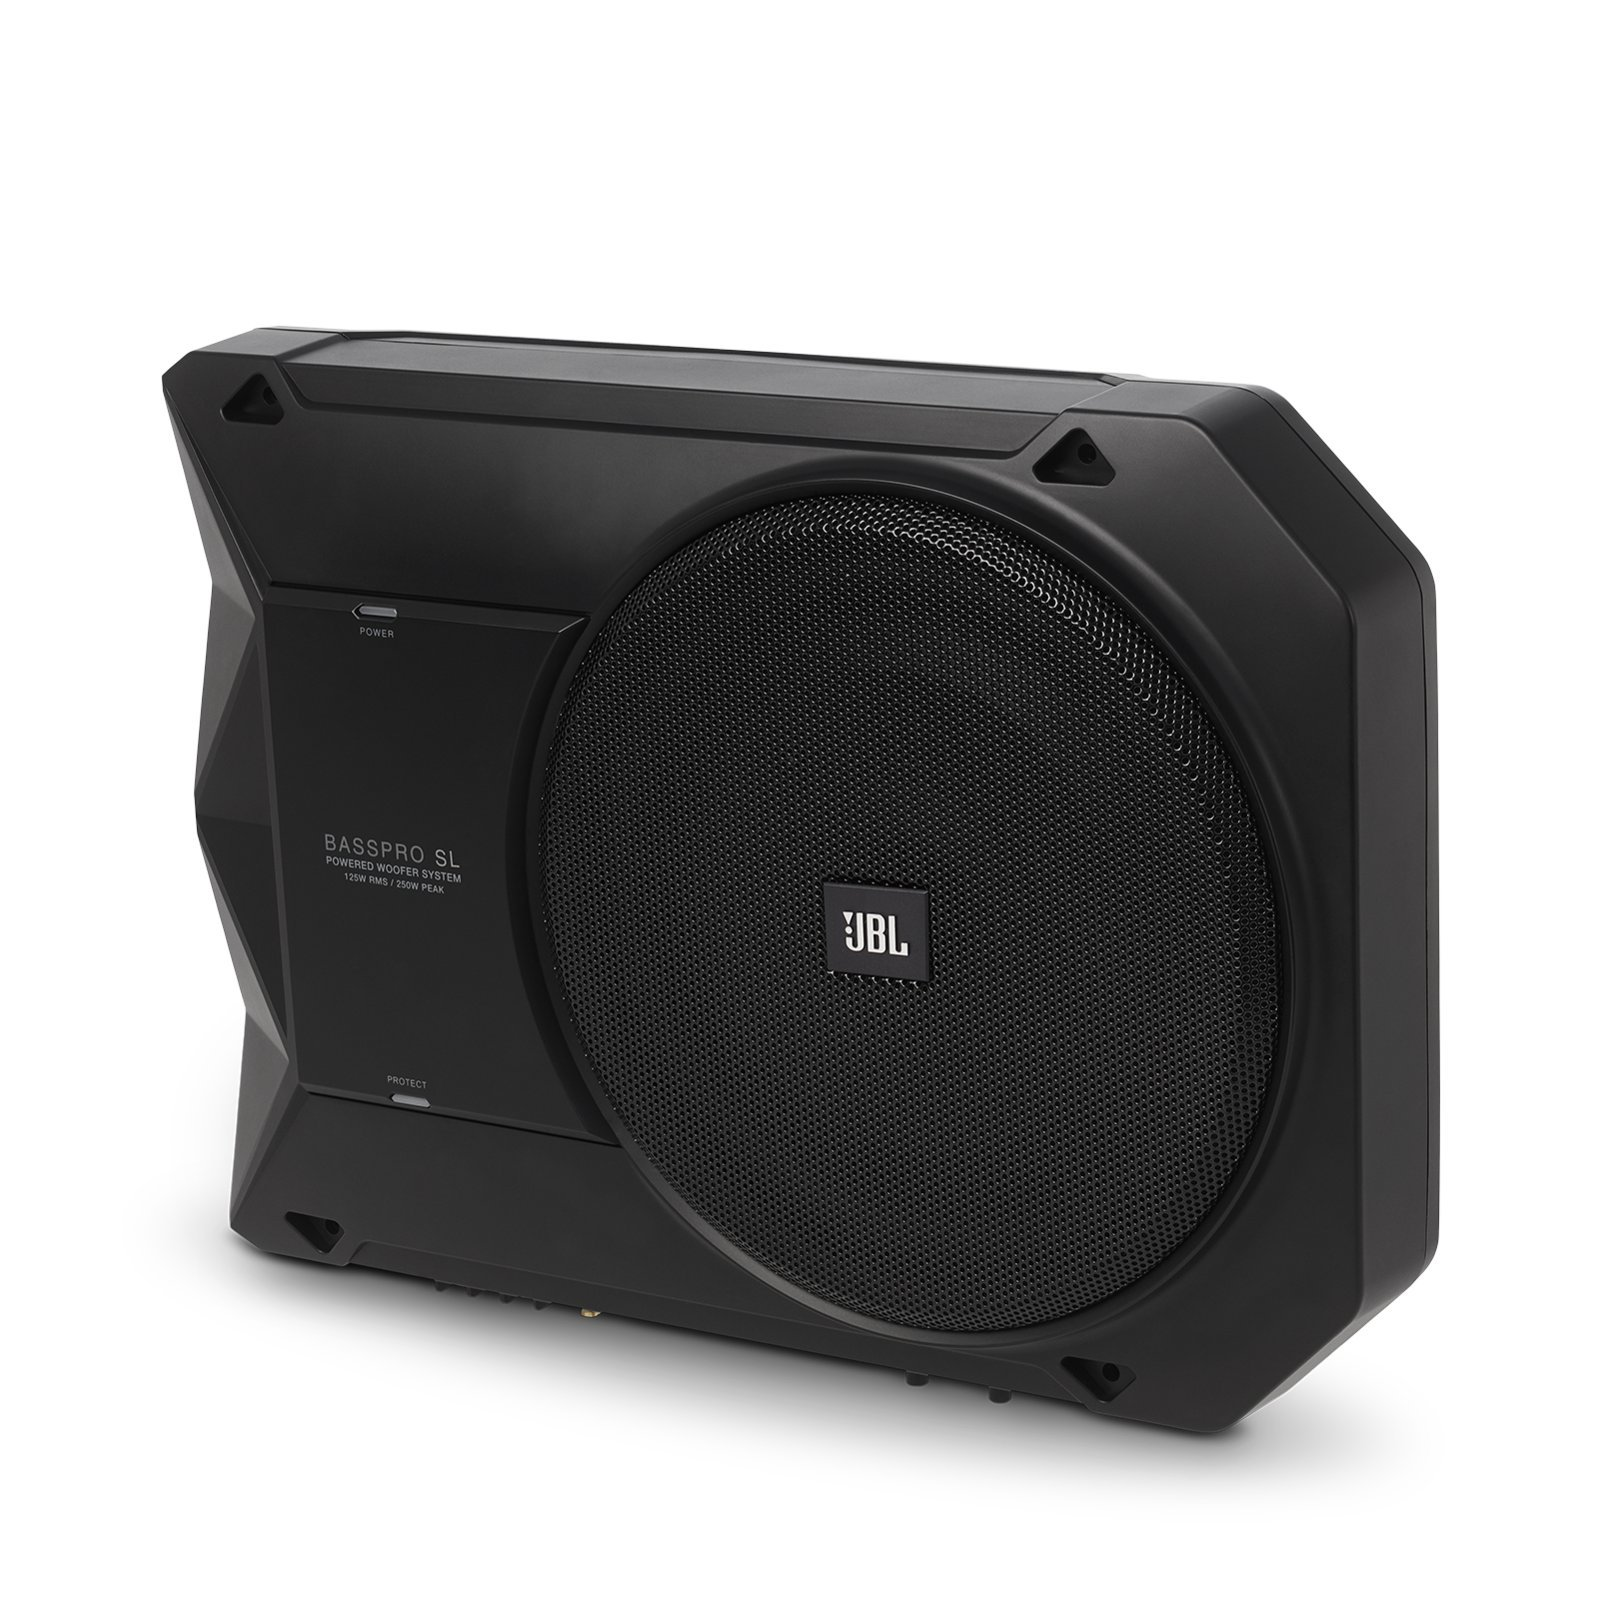 BassPro SL - JBL 8'' 125W RMS Powered Under-Seat Compact Subwoofer Enclosure System by JBL